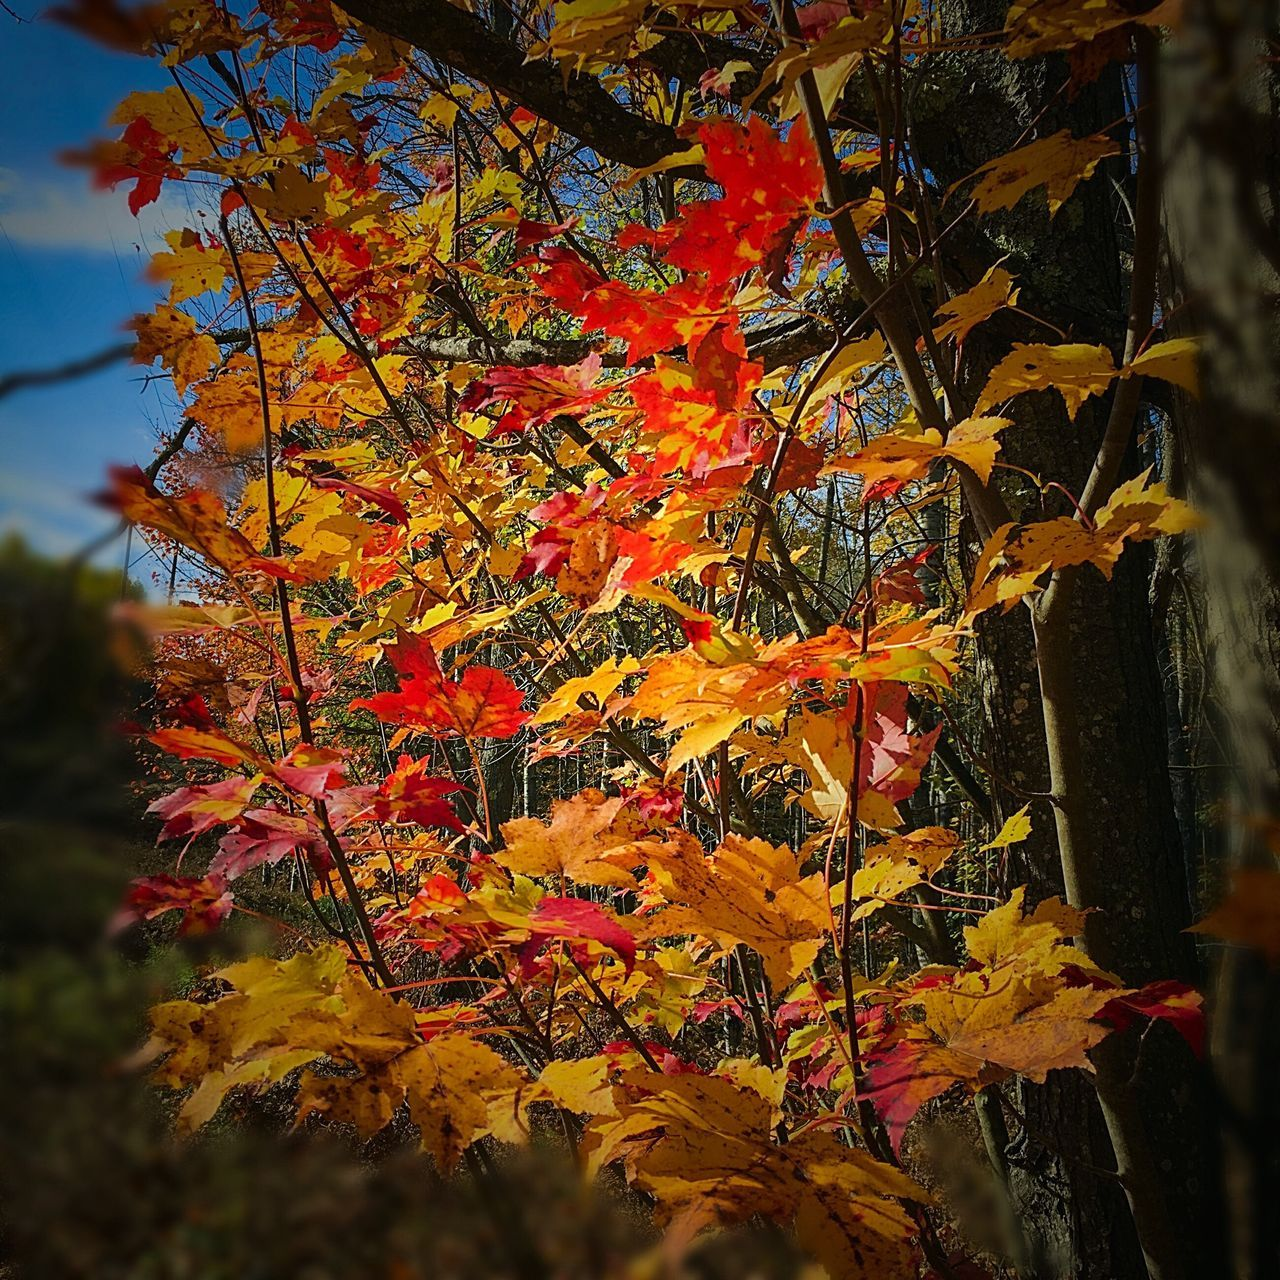 leaf, autumn, change, maple leaf, nature, leaves, beauty in nature, maple tree, maple, orange color, tree, outdoors, day, tranquility, no people, scenics, low angle view, multi colored, close-up, water